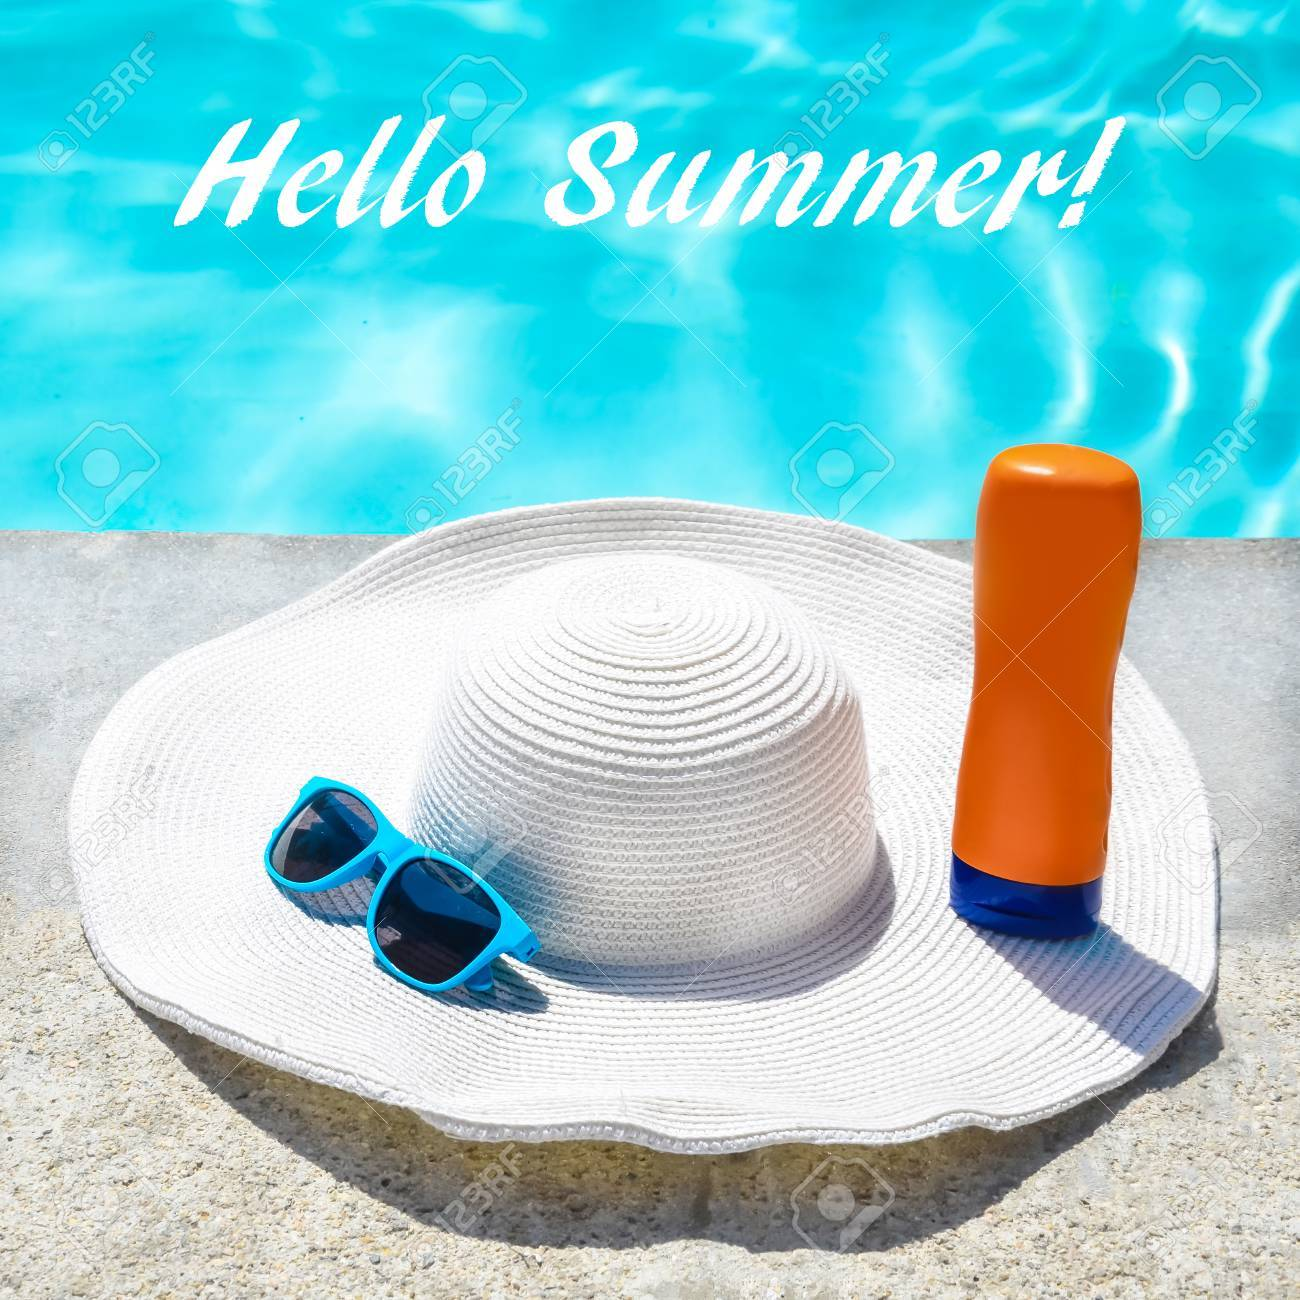 e7ca1034aa0 Hello Summer Background With Hat